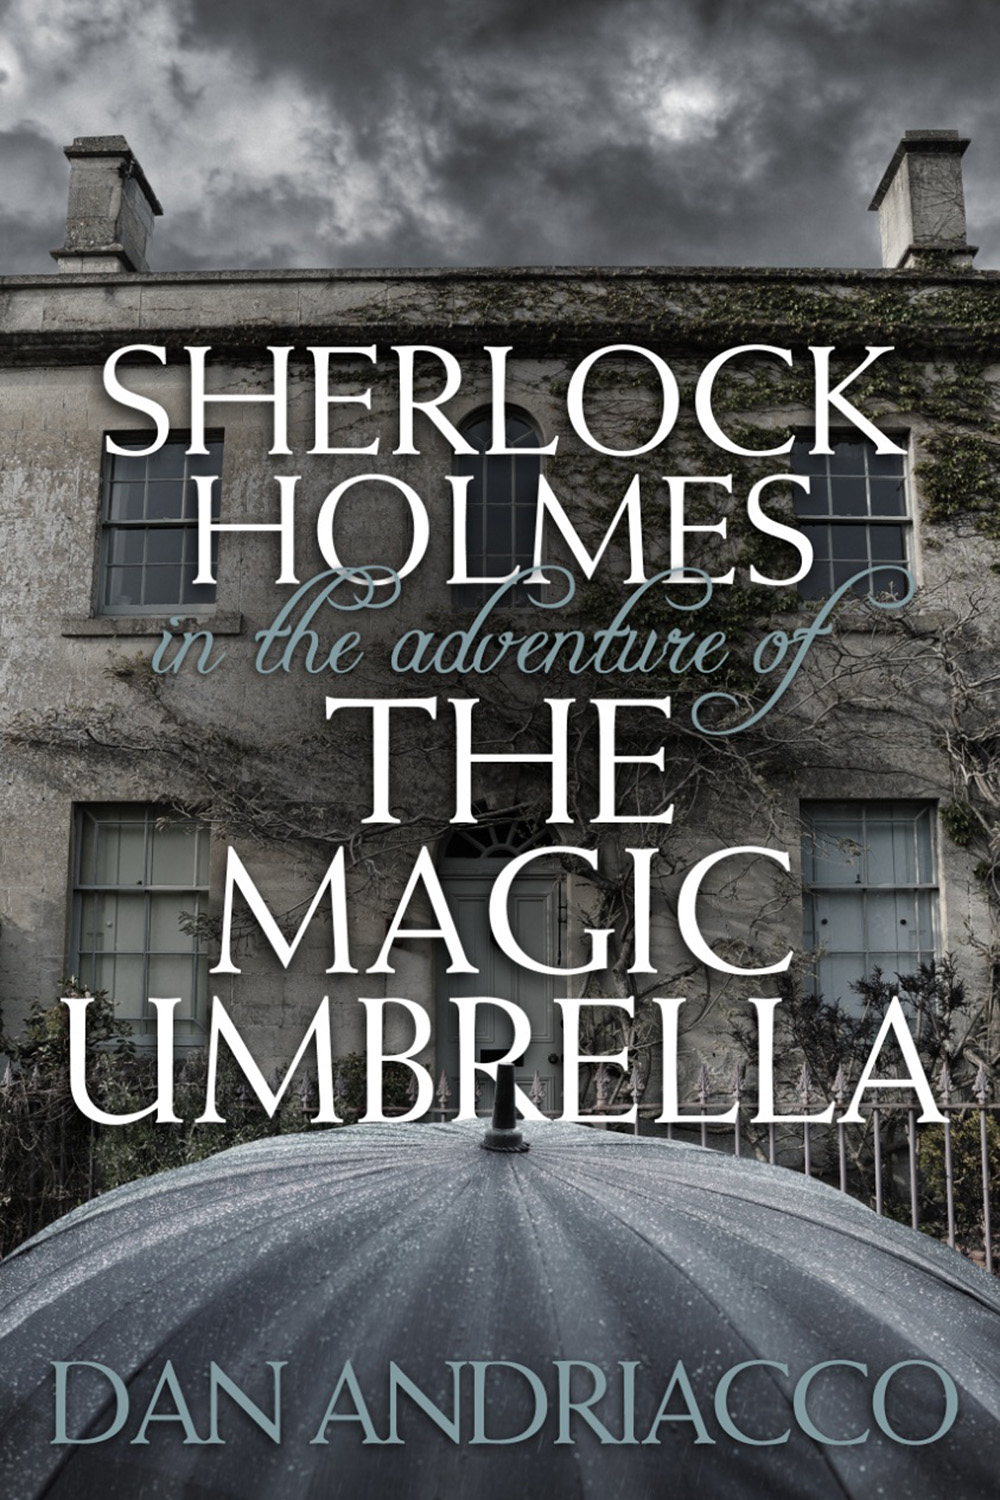 Sherlock Holmes in The Adventure of The Magic Umbrella By: Dan Andriacco